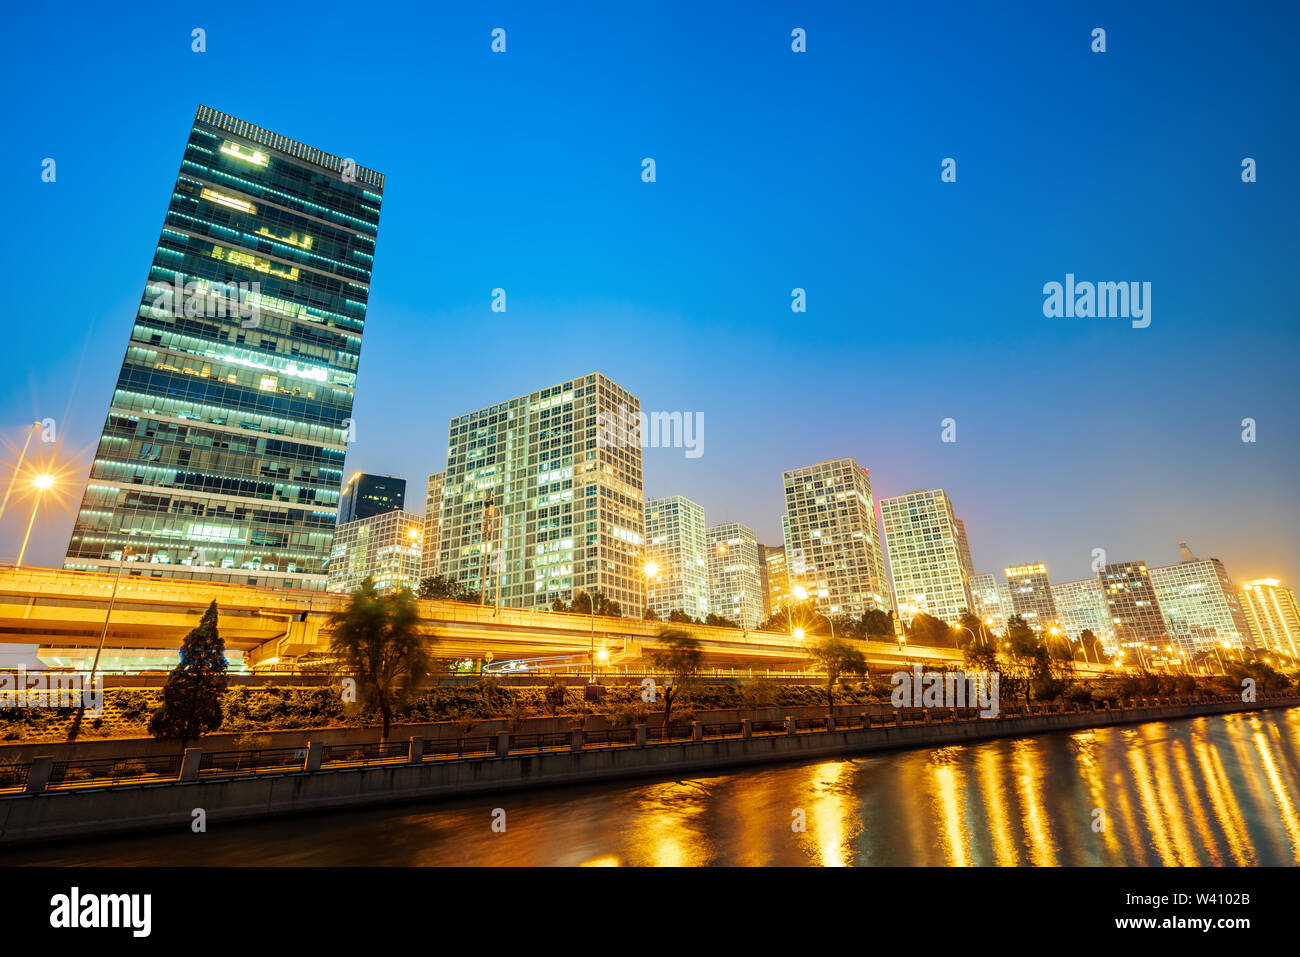 Beijing, China Central Business District city skyline on the Tonghui River. - Stock Image